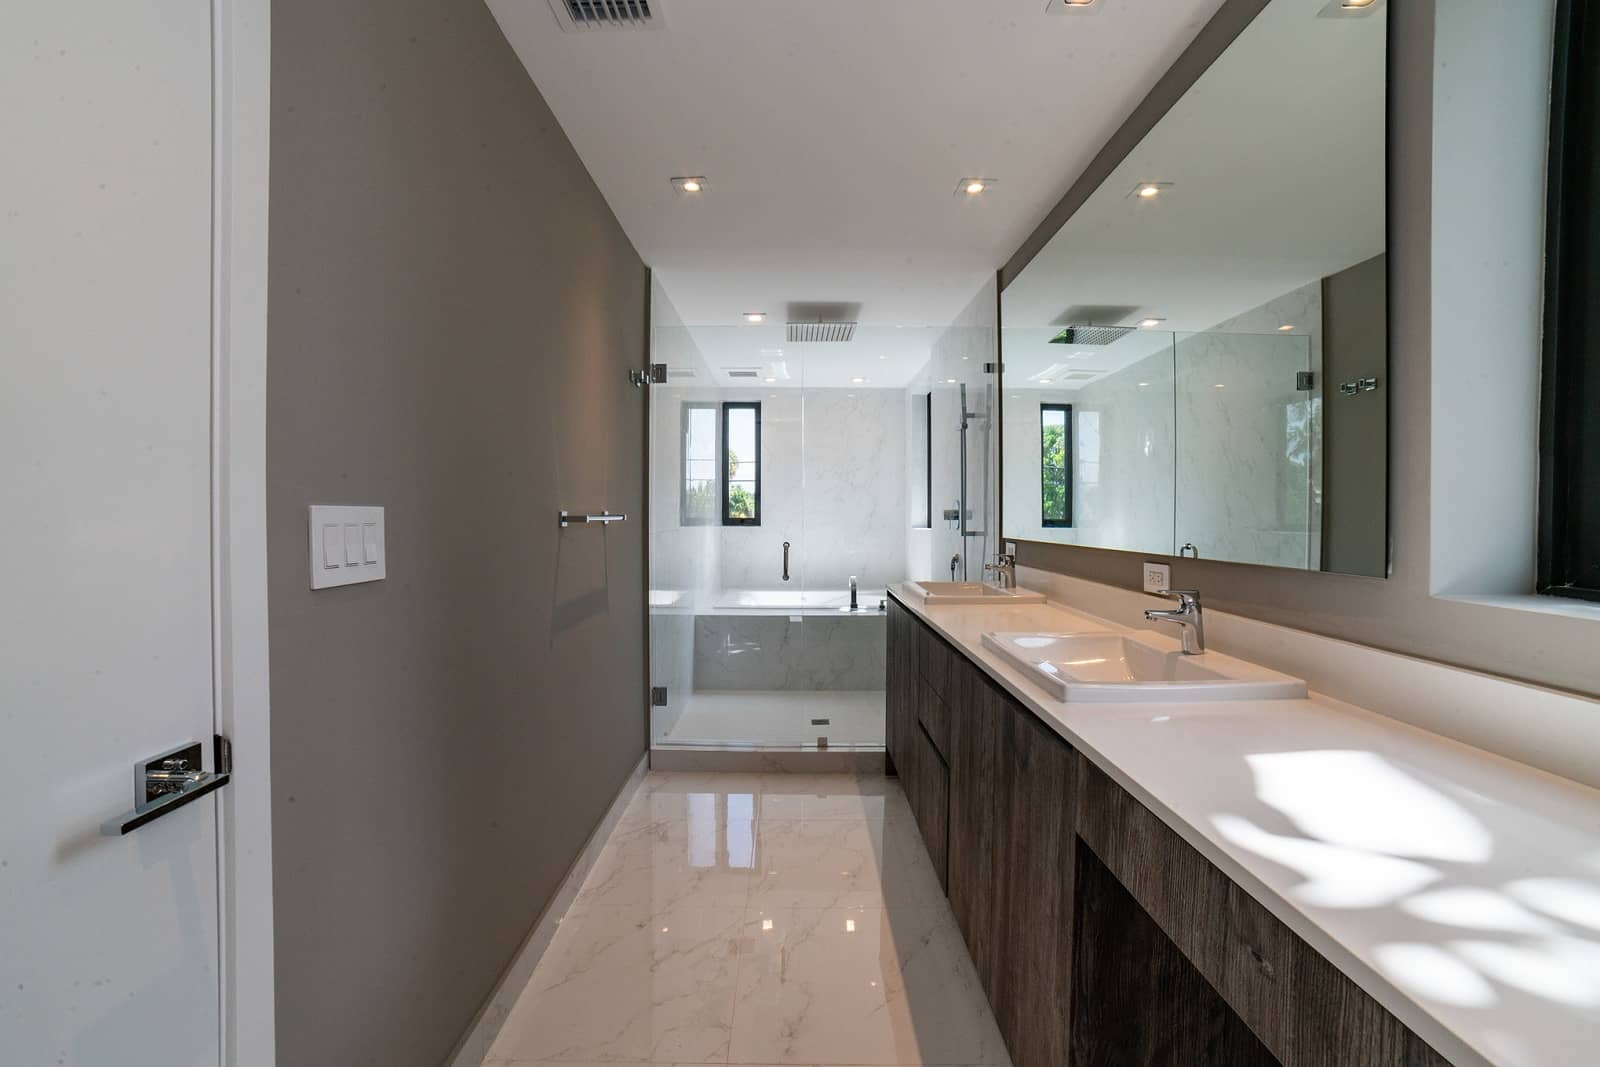 Real Estate Photography in Hollywood - FL - USA - Bathroom View